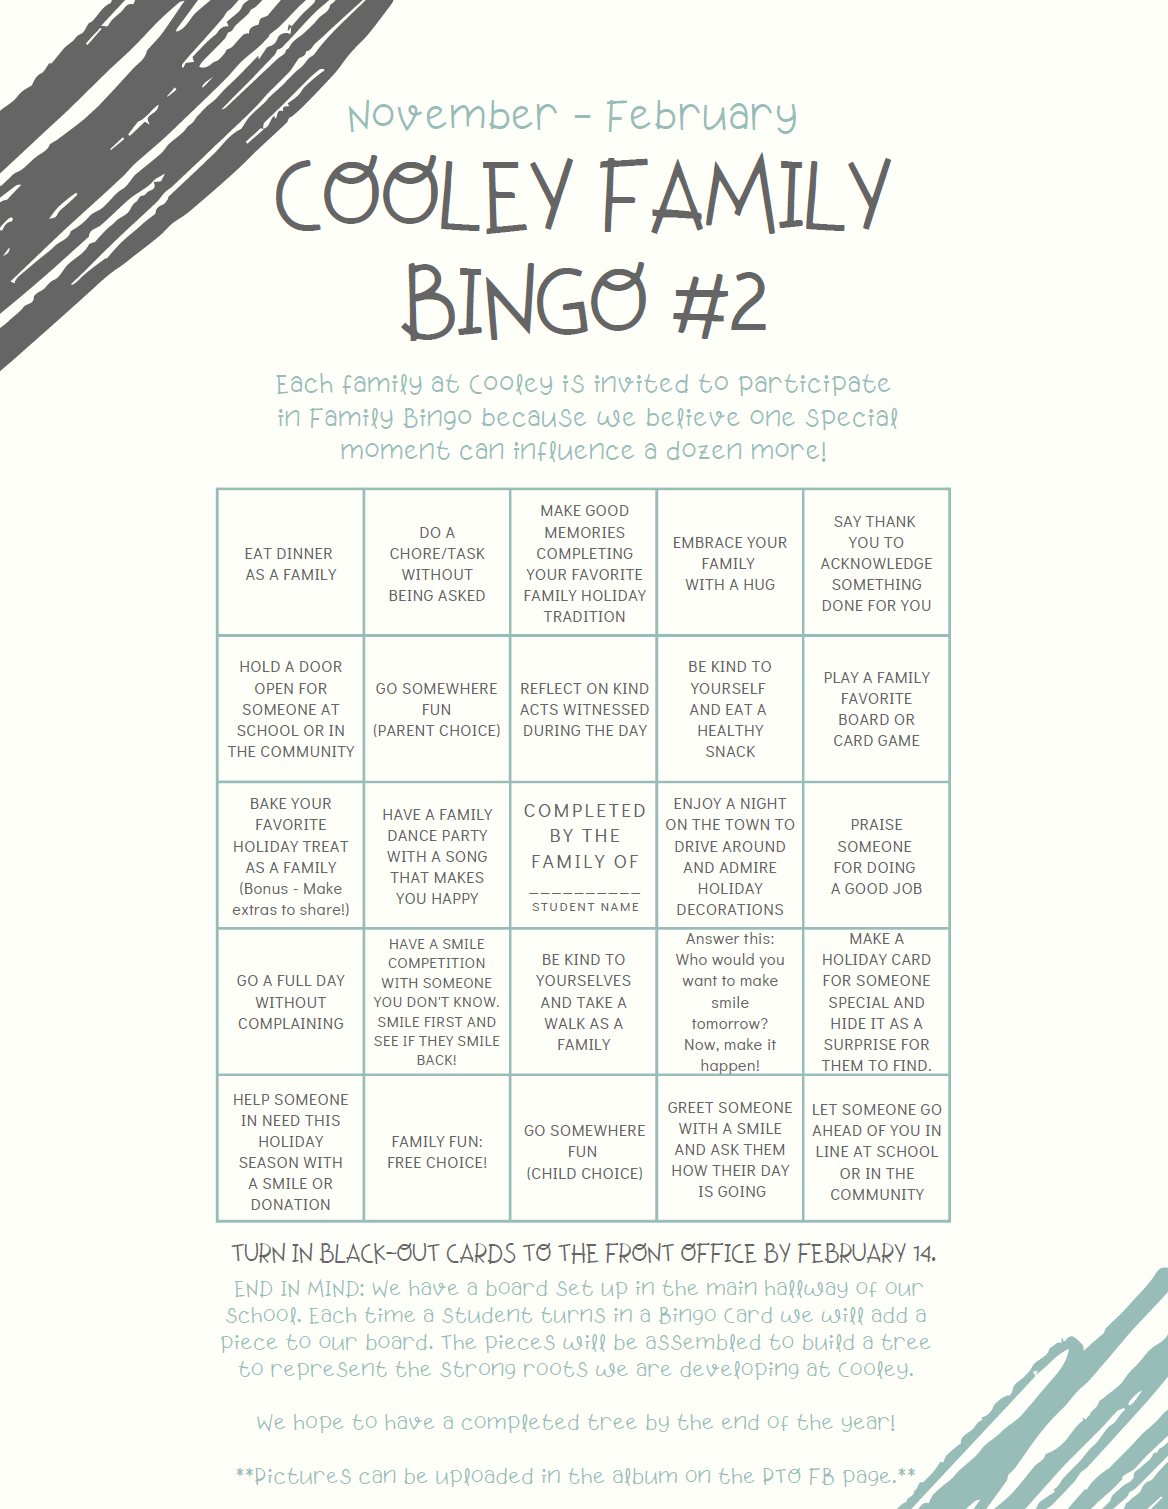 Cooley Family Bingo